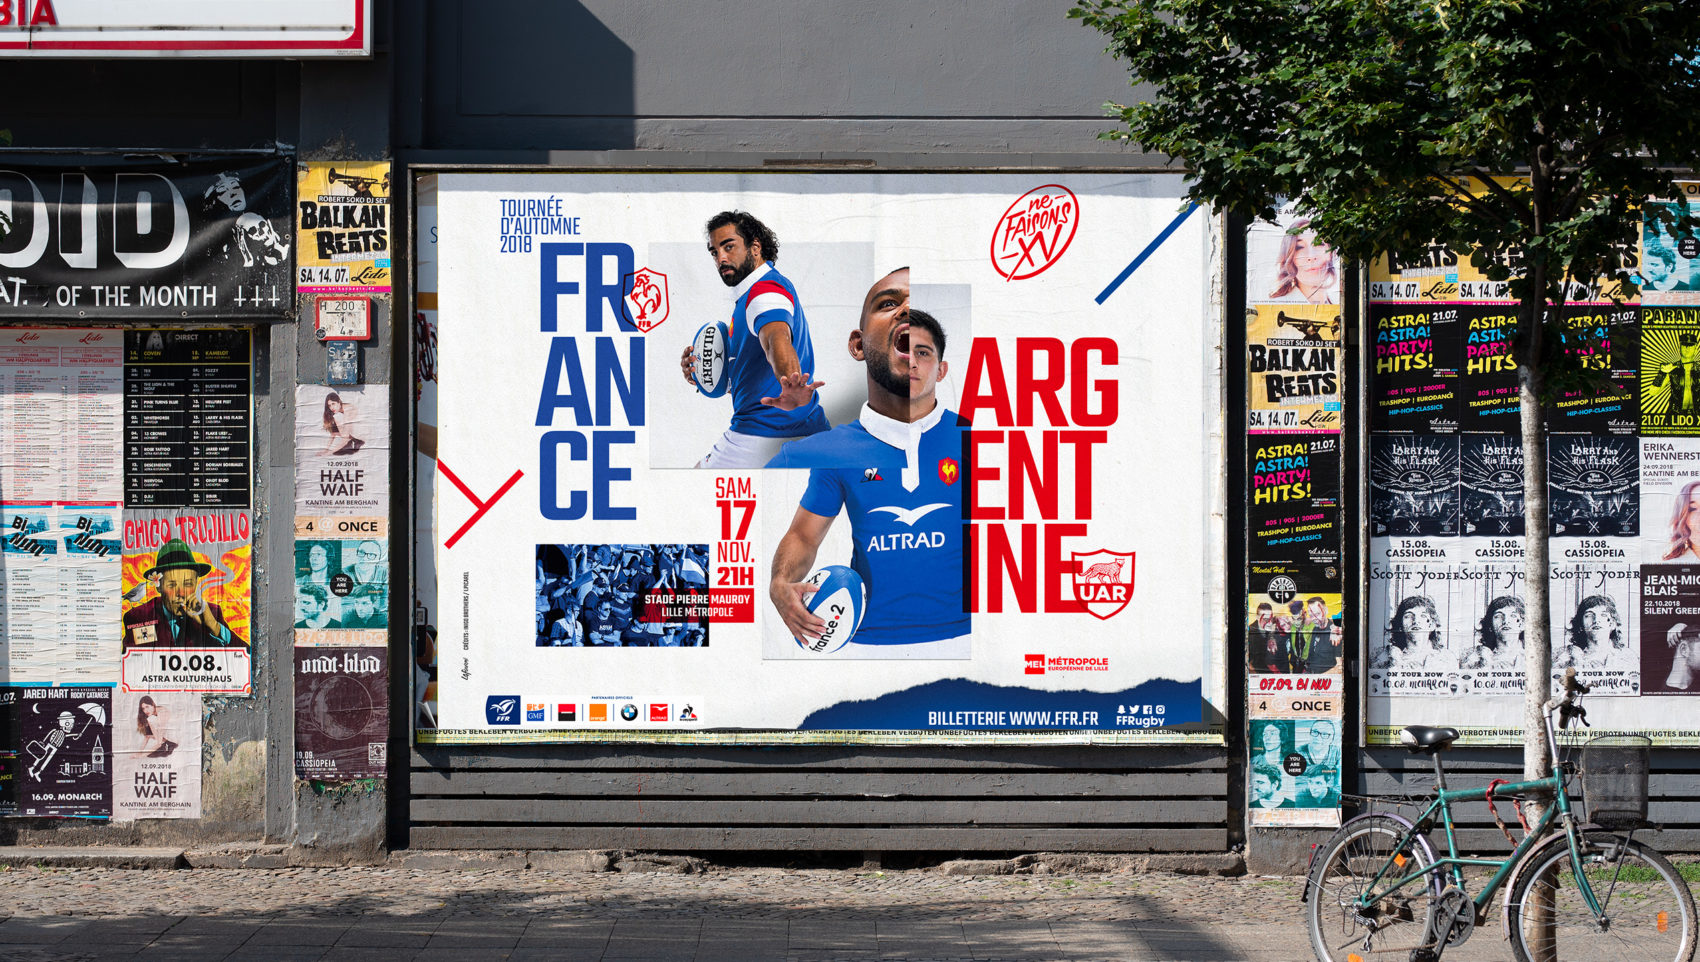 Projet_FFR_CAMPAGNE_#NEFAISONSXV_equipes_de_France_federation_francaise_french_rugby